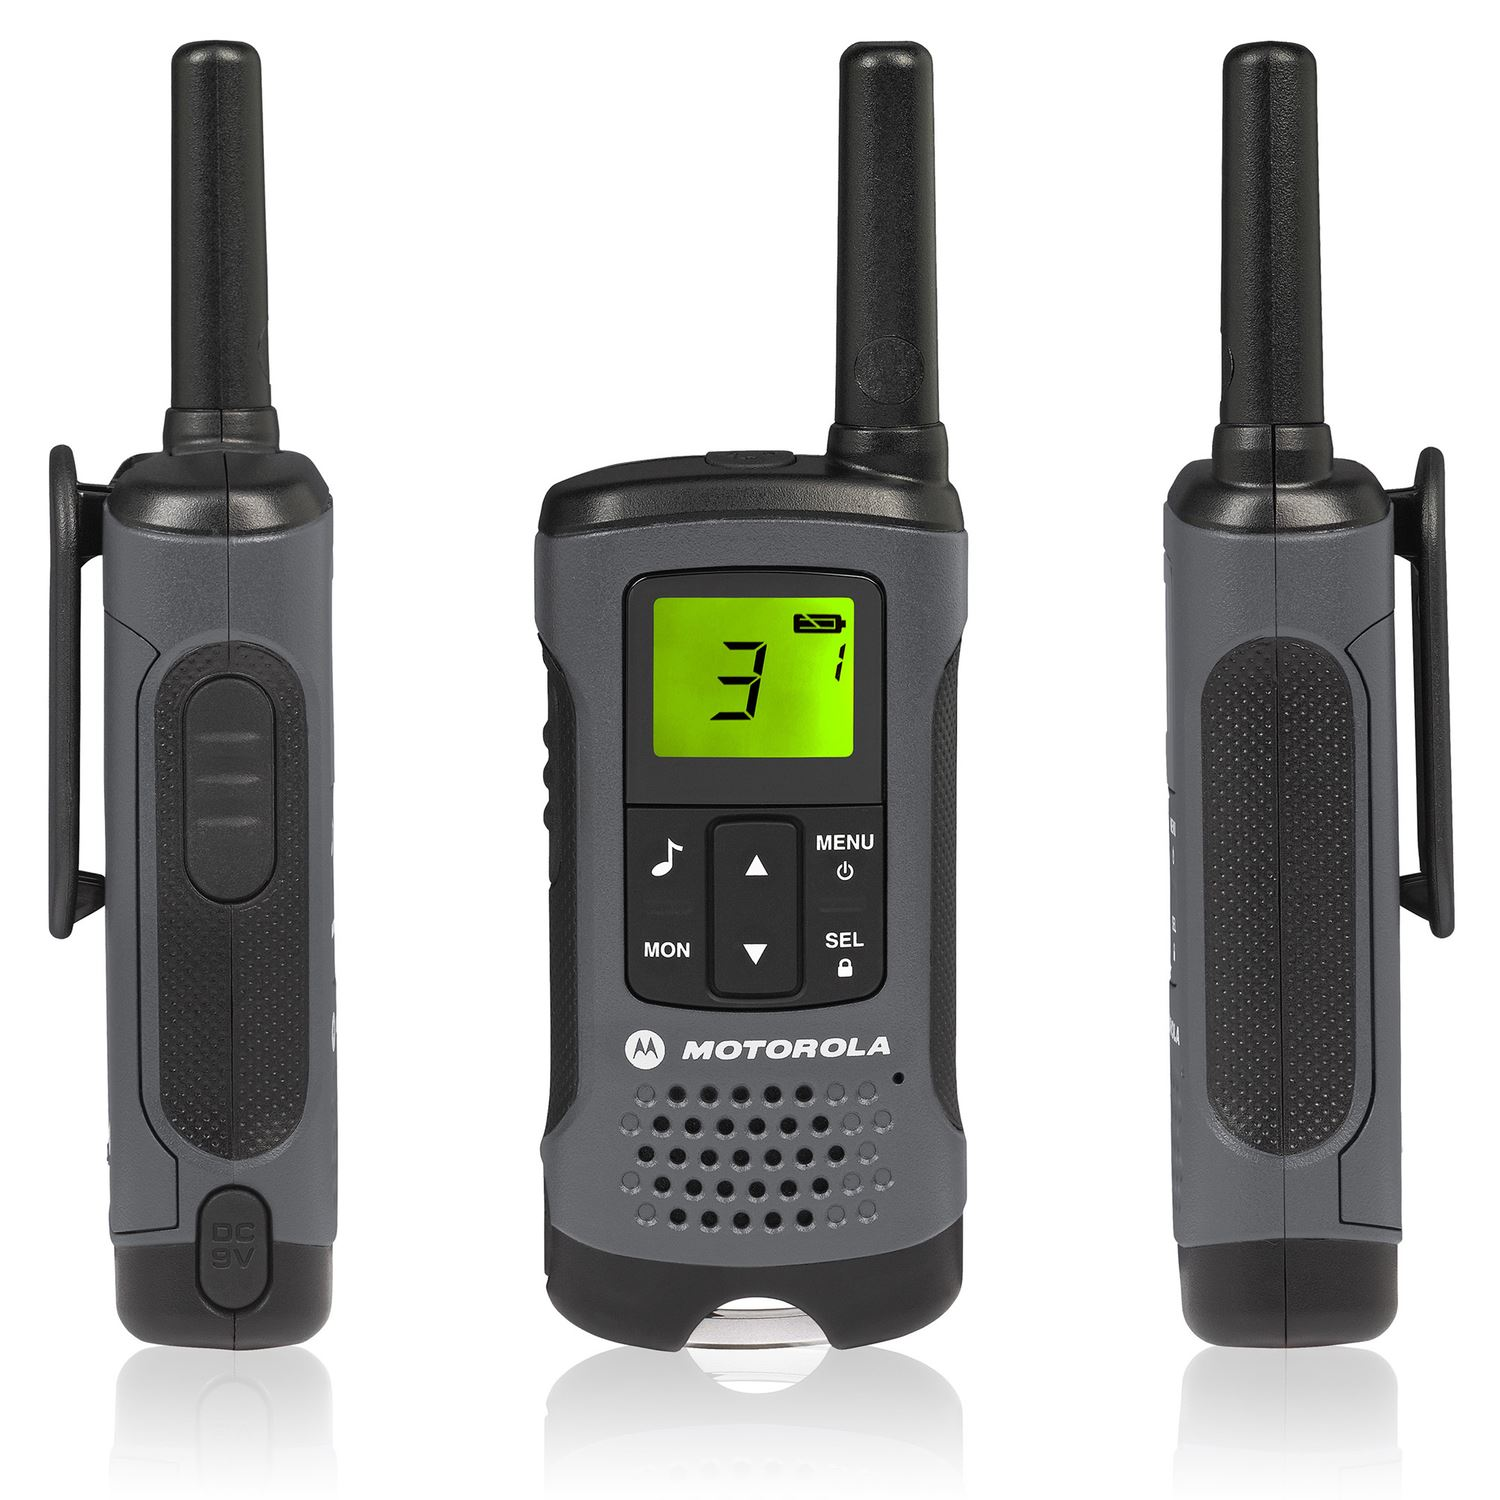 motorola tlkr t60z walkie talkie pmr446 5m radio. Black Bedroom Furniture Sets. Home Design Ideas